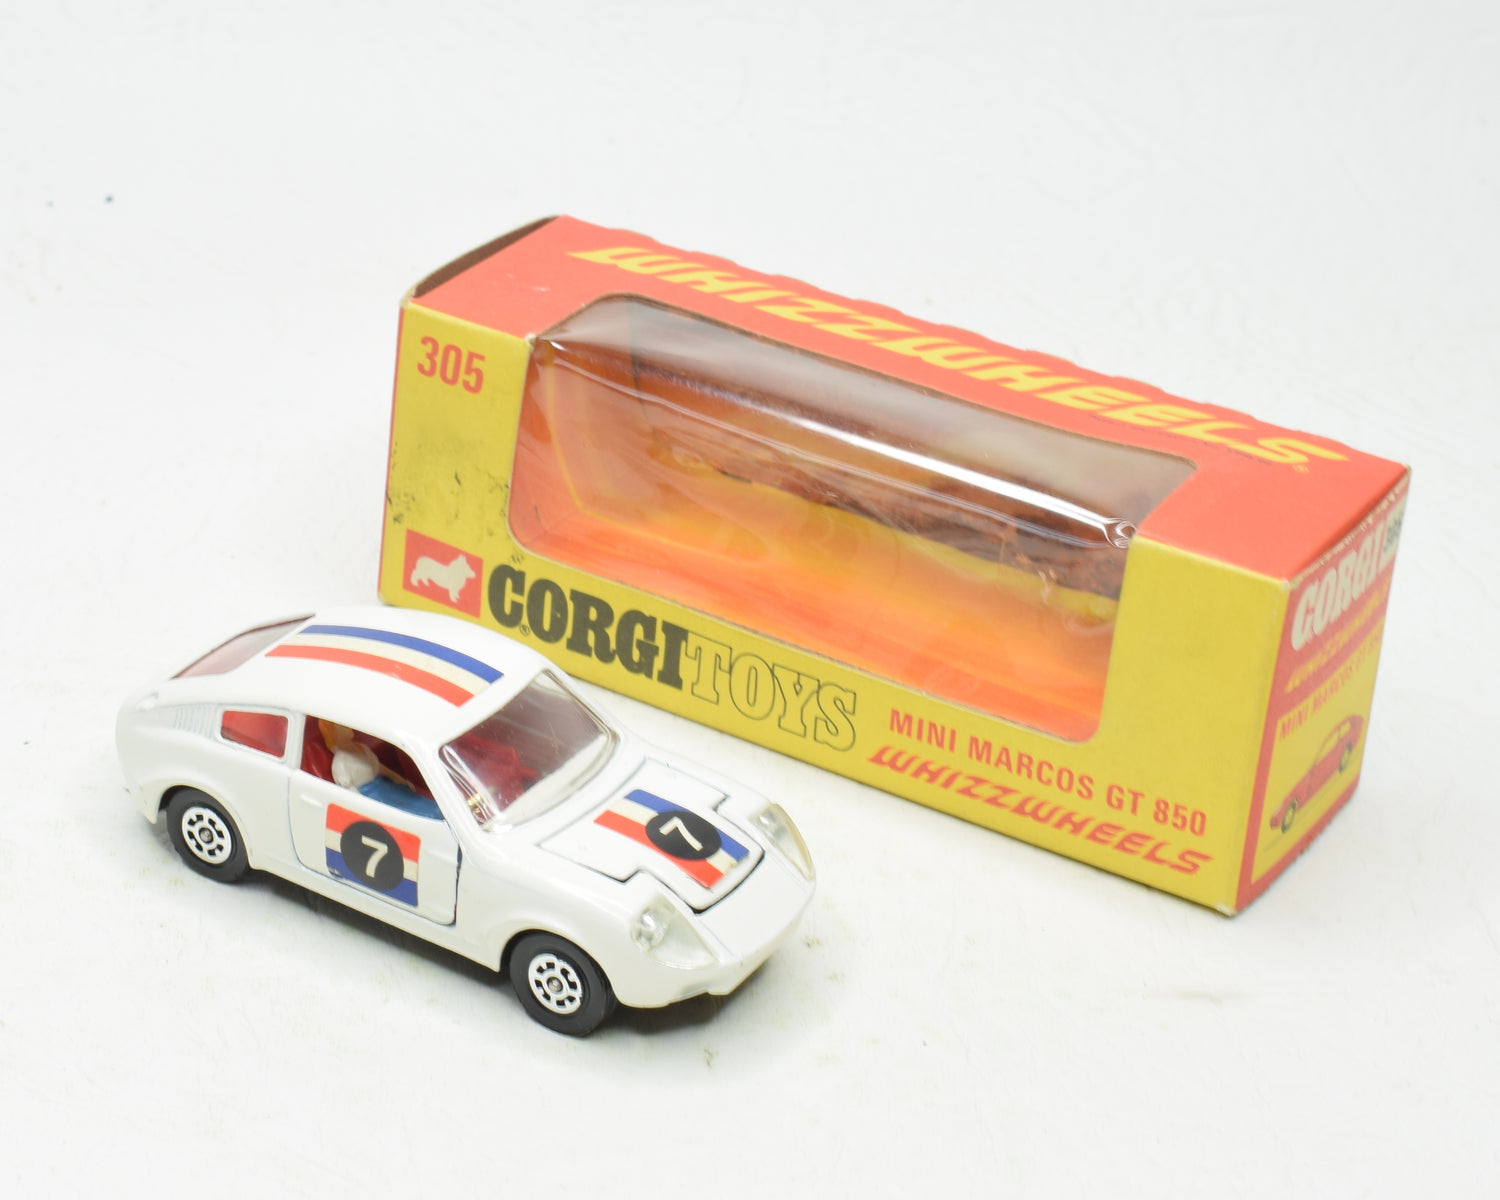 Corgi toys 305 Mini Marcos GT 850 litre Very Near Mint/Boxed (The 'Ashdown' Collection)